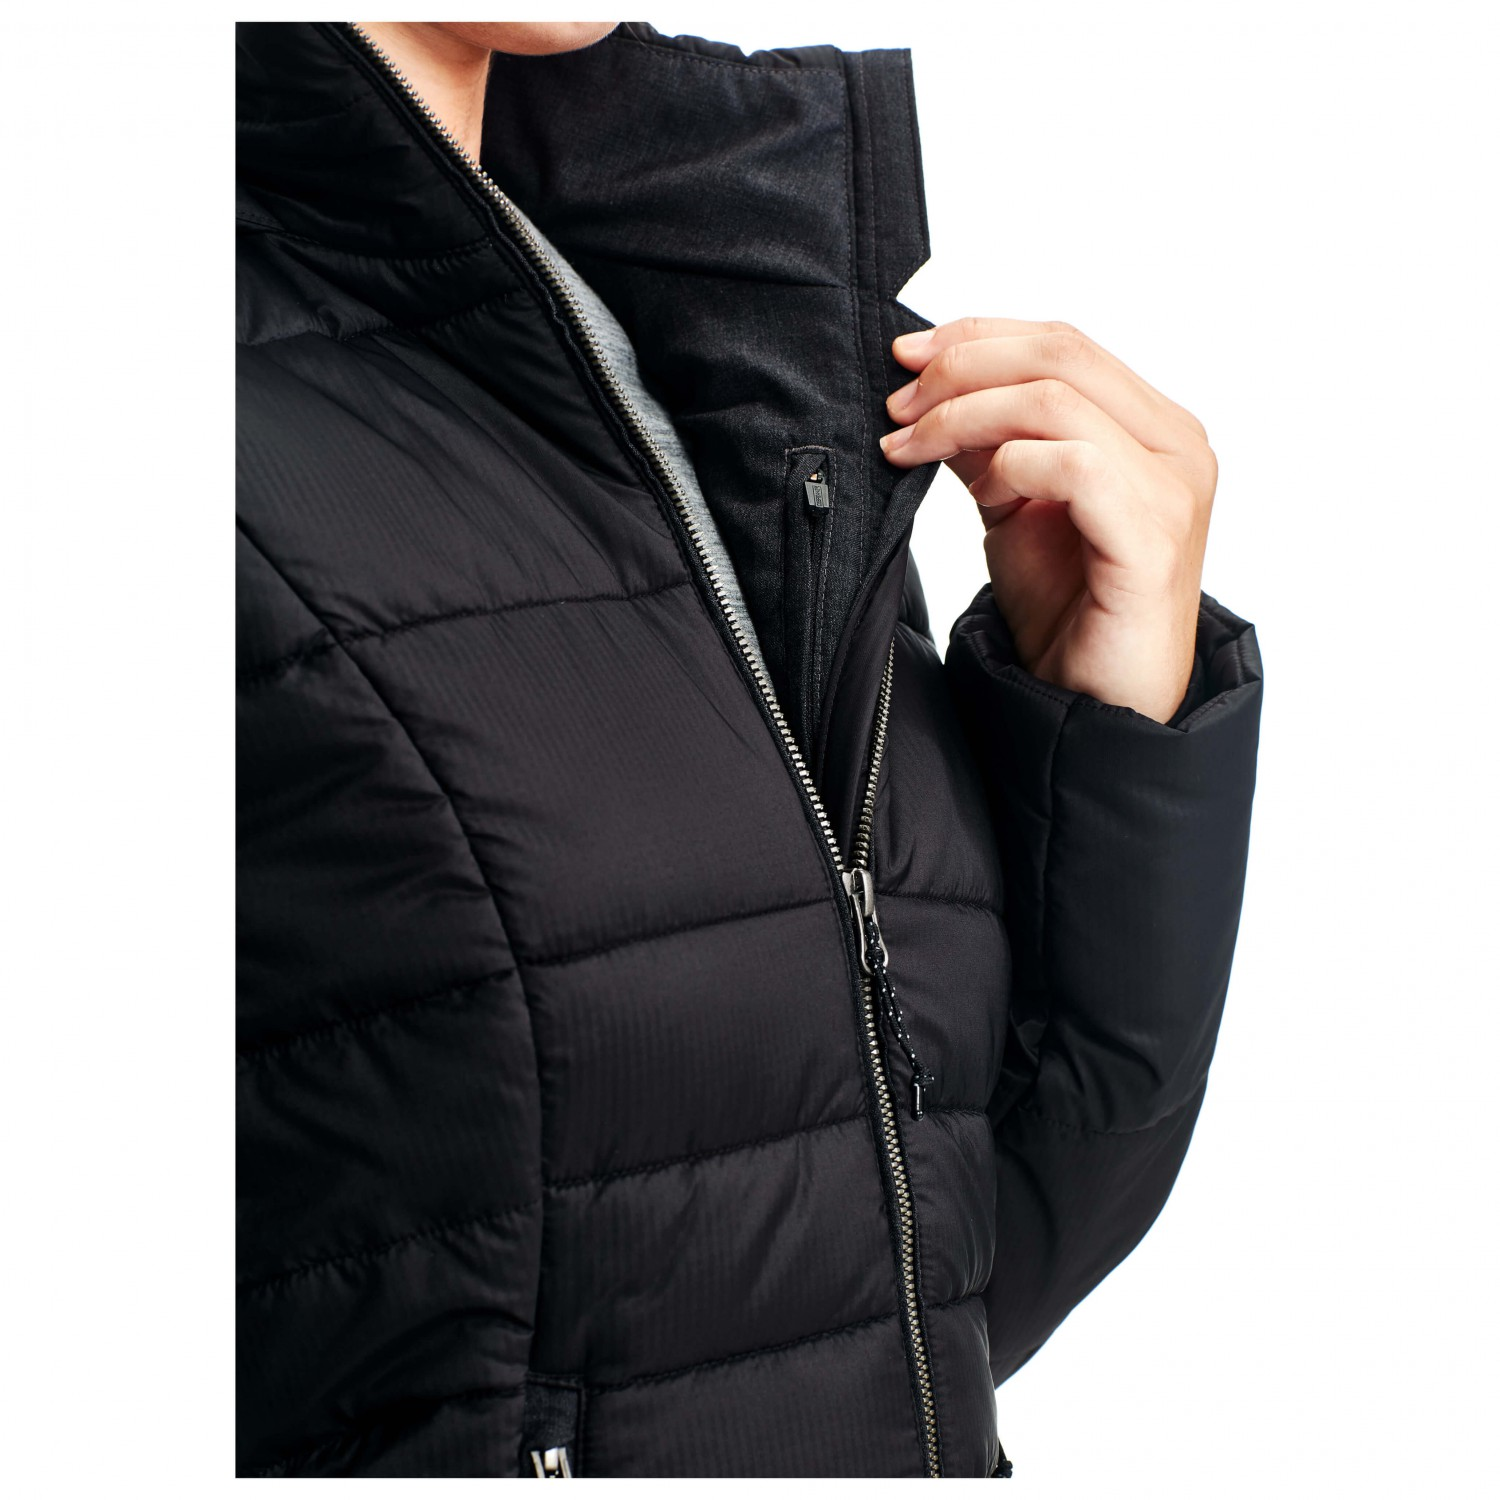 50583c9ec8 ... Icebreaker - Women's Stratus X Hooded Jacket - Wool jacket ...